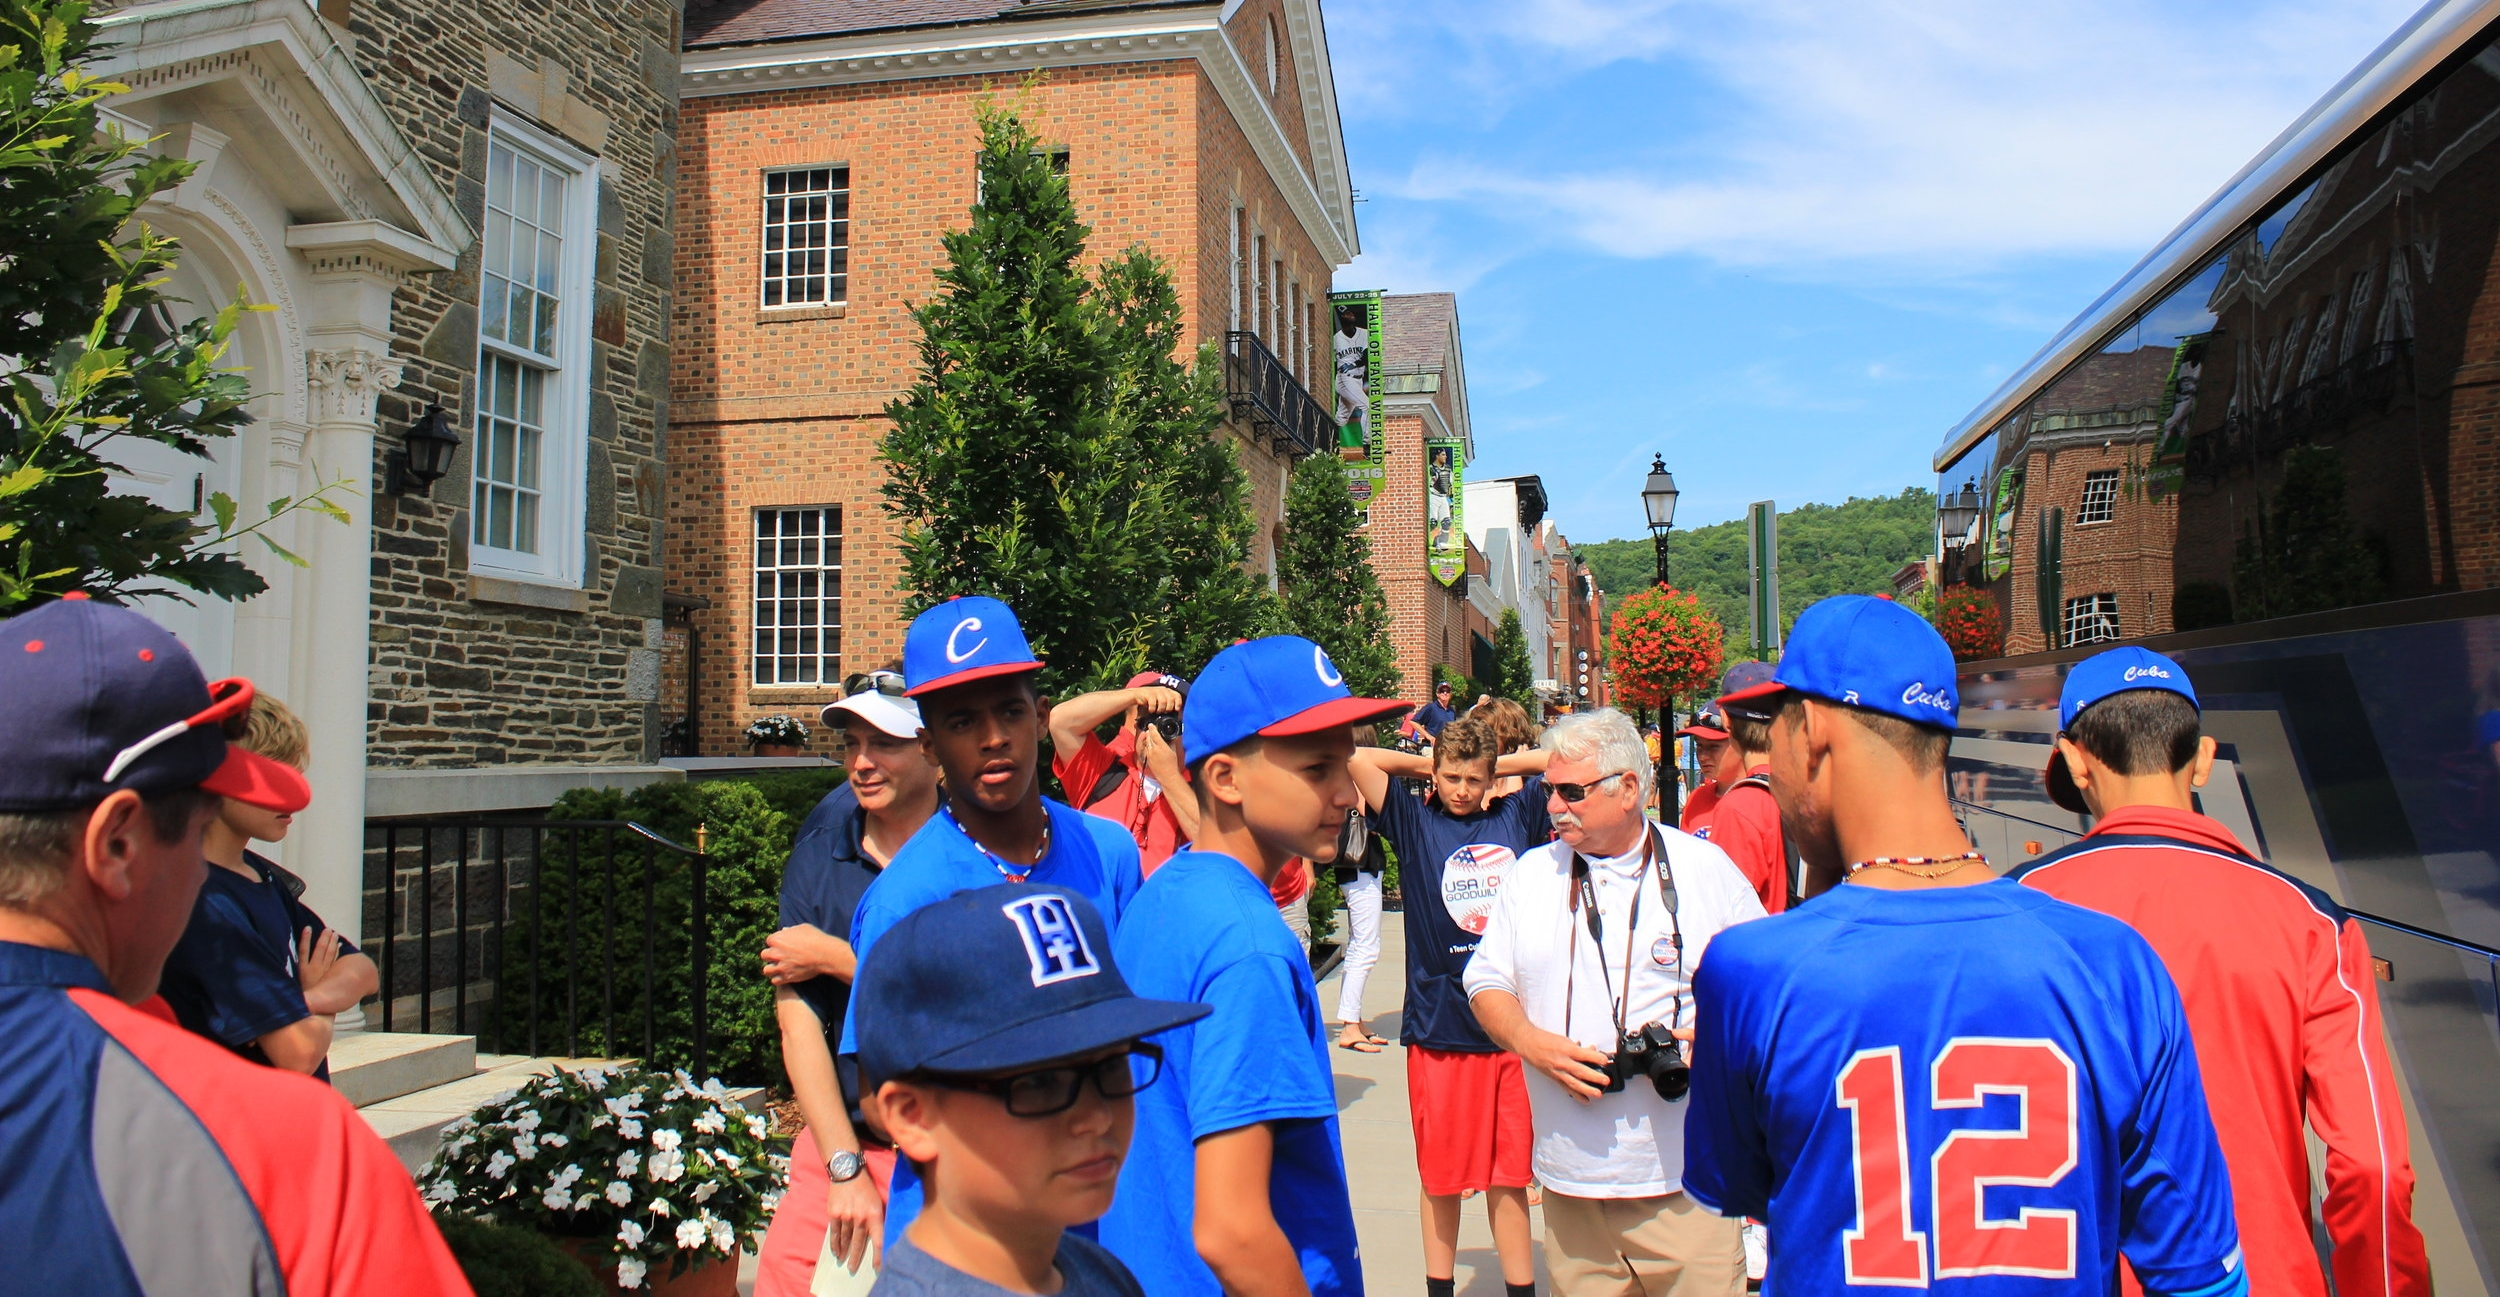 host families, USA and Cuba players in Cooperstown